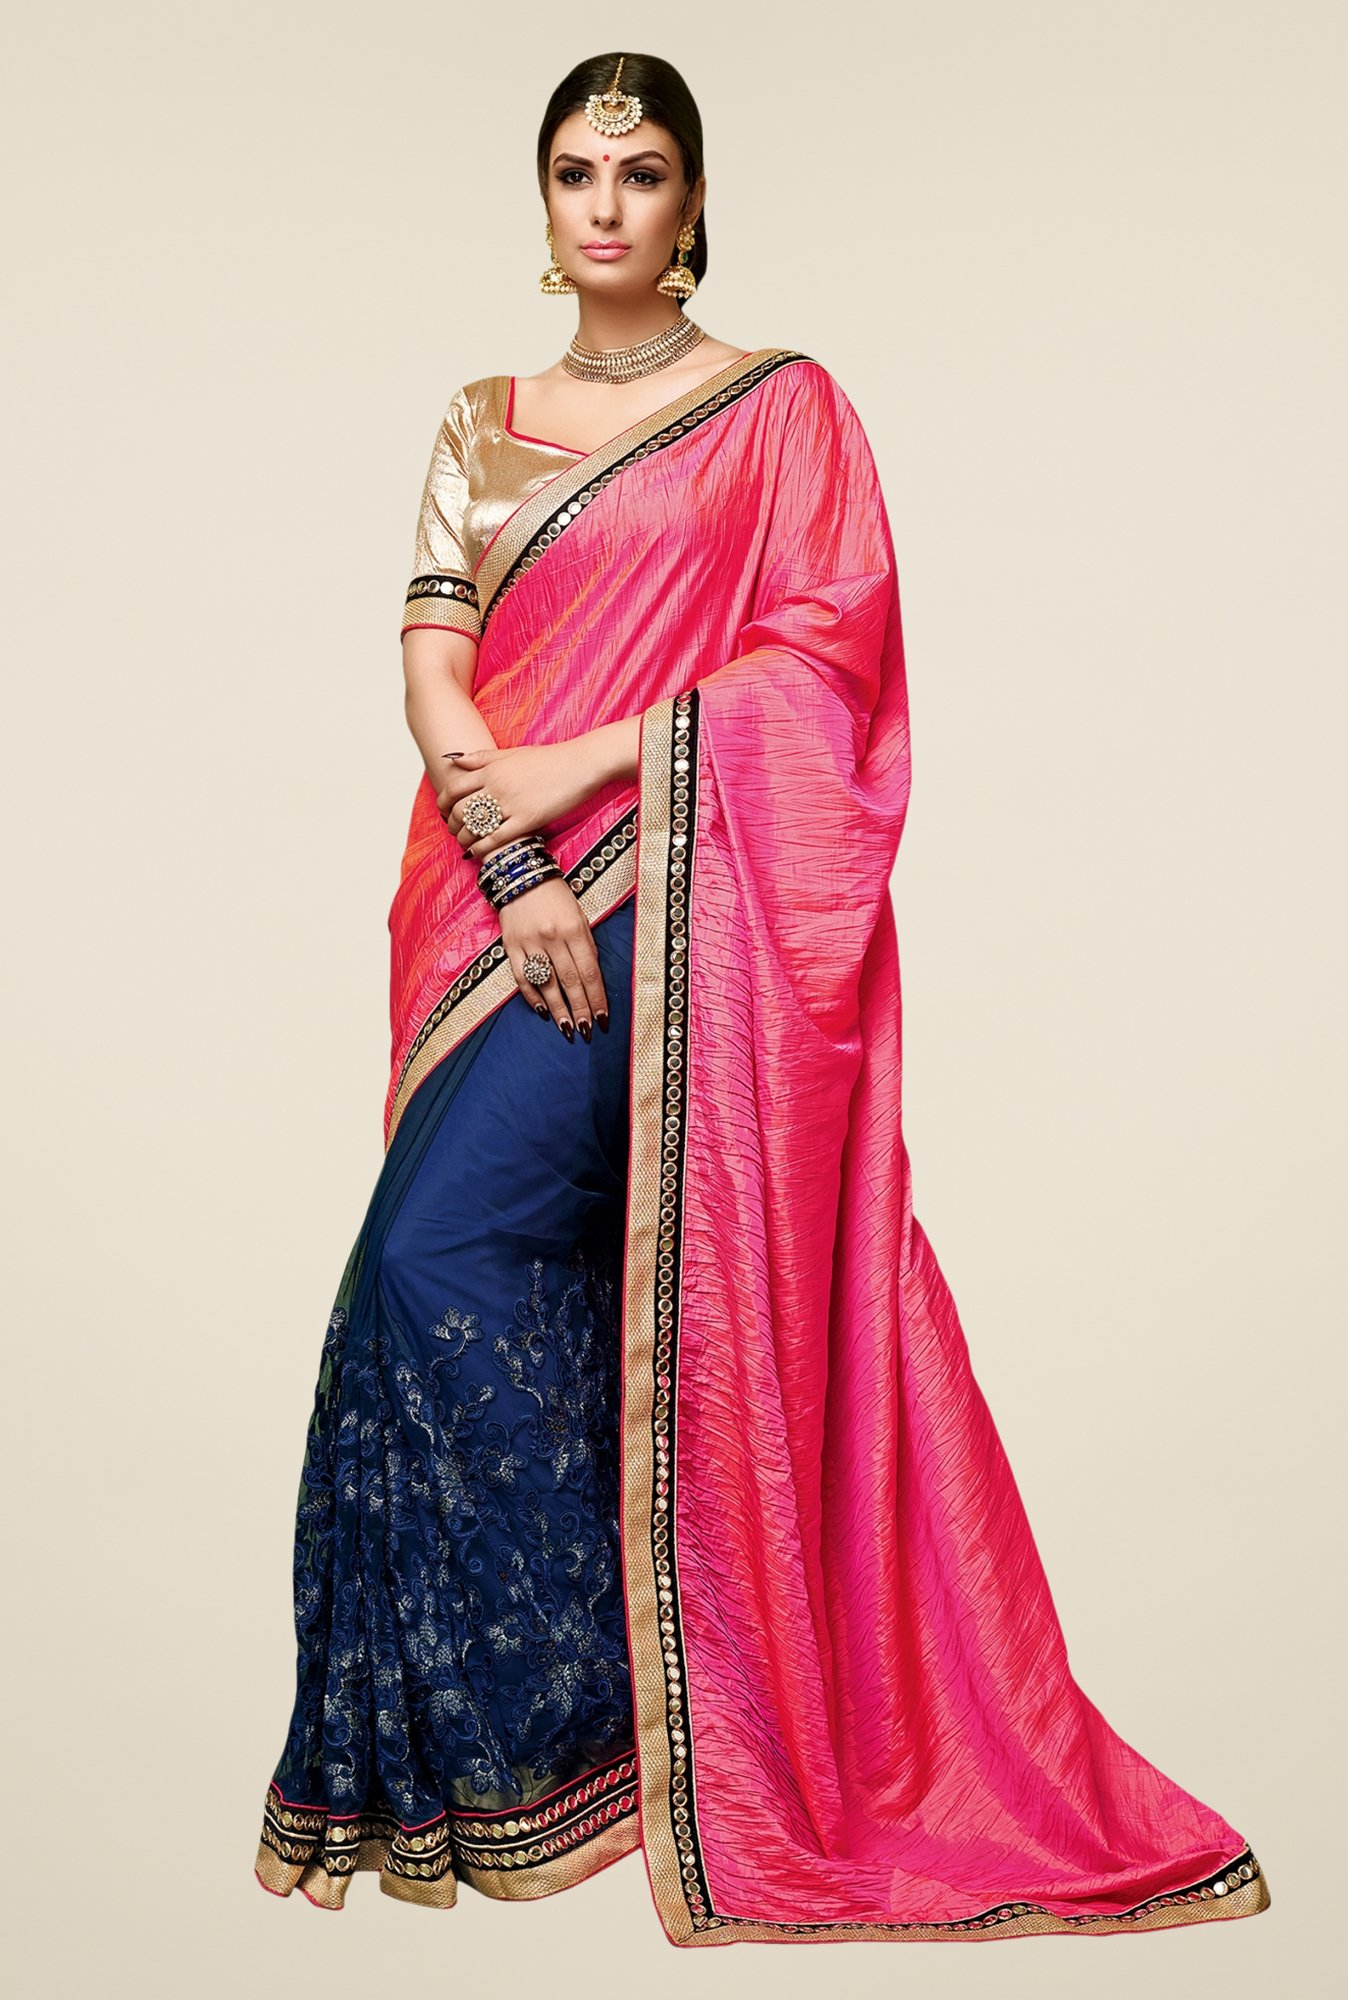 Triveni Blue & Pink Embroidered Satin Net Saree